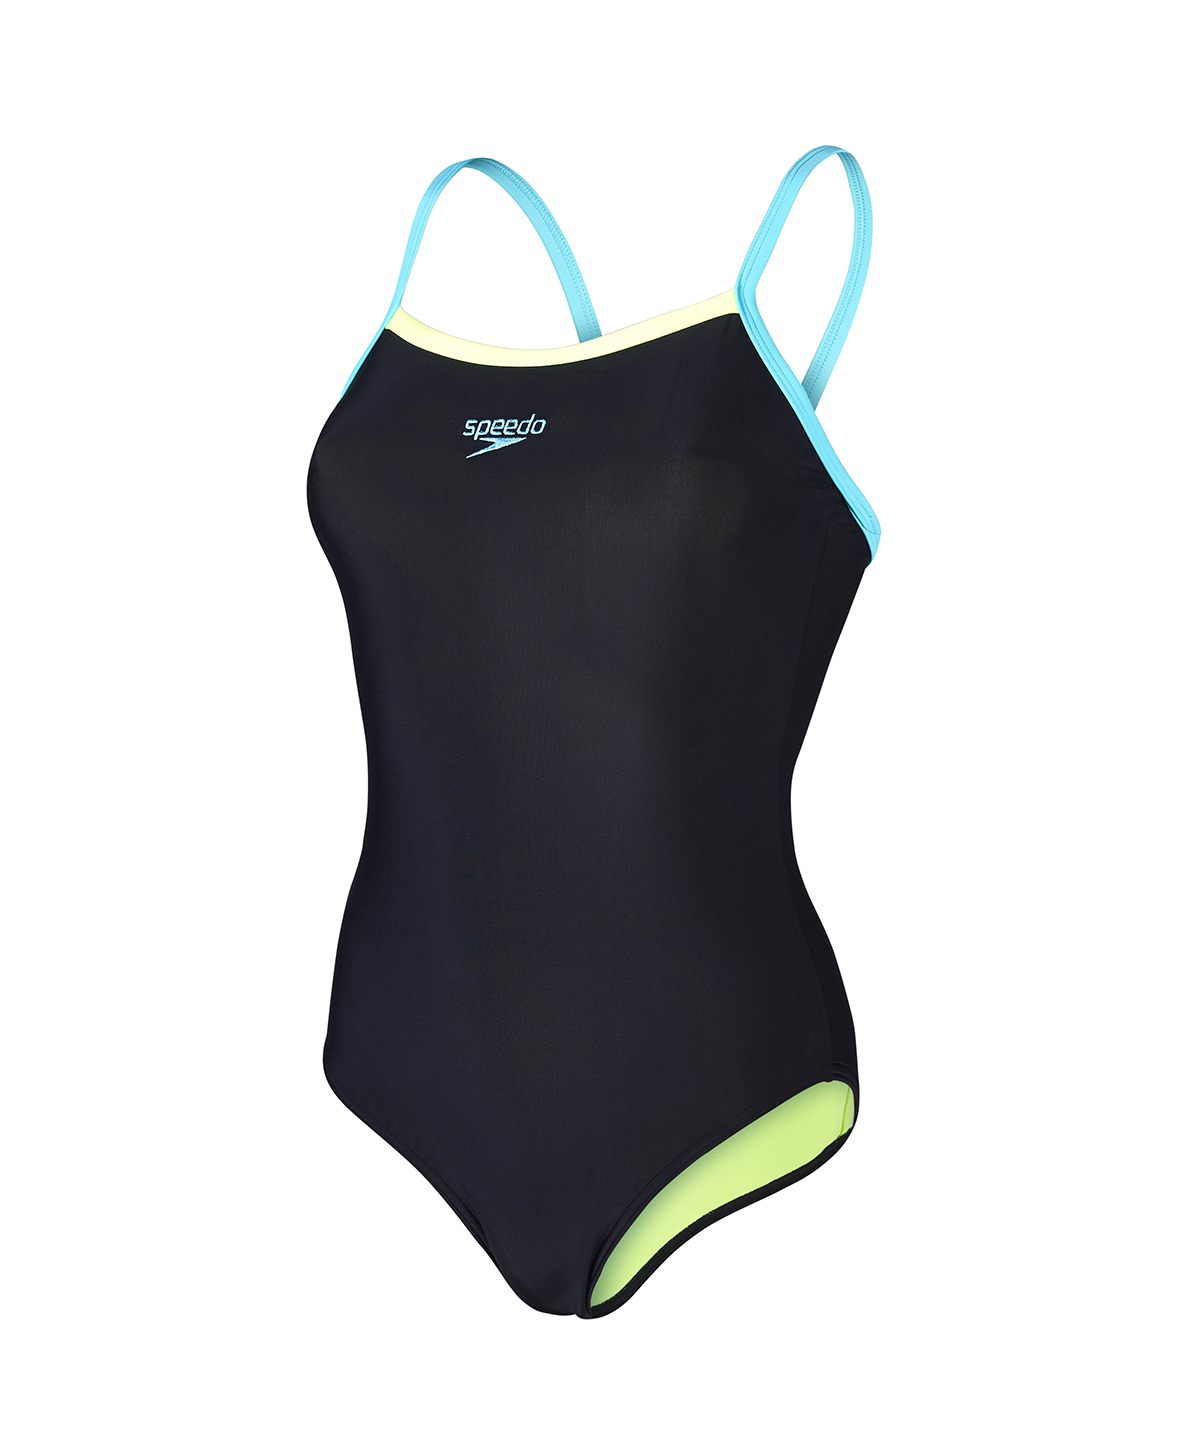 Speedo Ladies Thin Strap Muscleback - Black